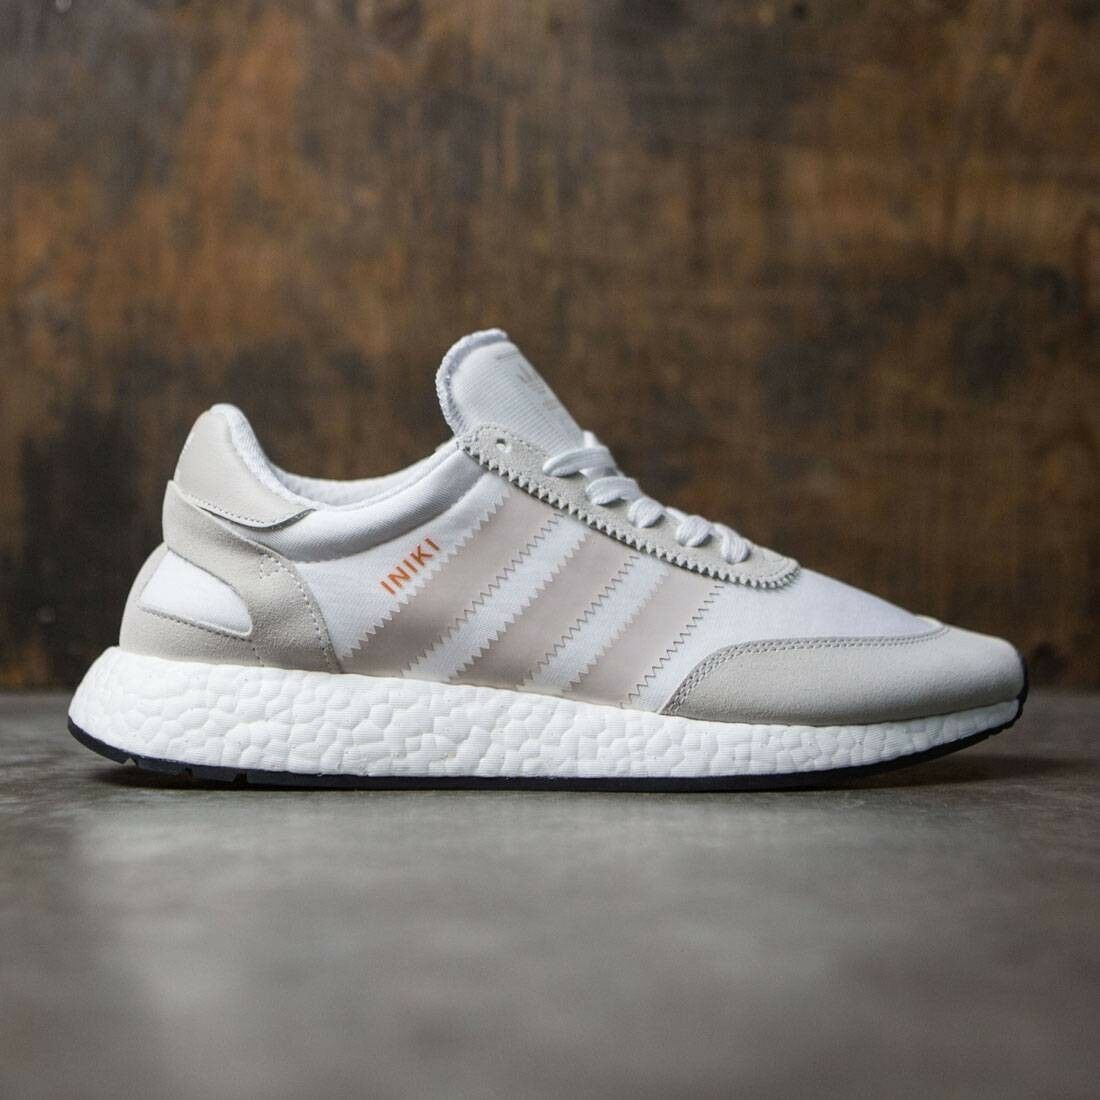 Adidas Ultra Boost Iniki Runner Pearl Grey Size 11. BY9731 Yeezy NMD Pk